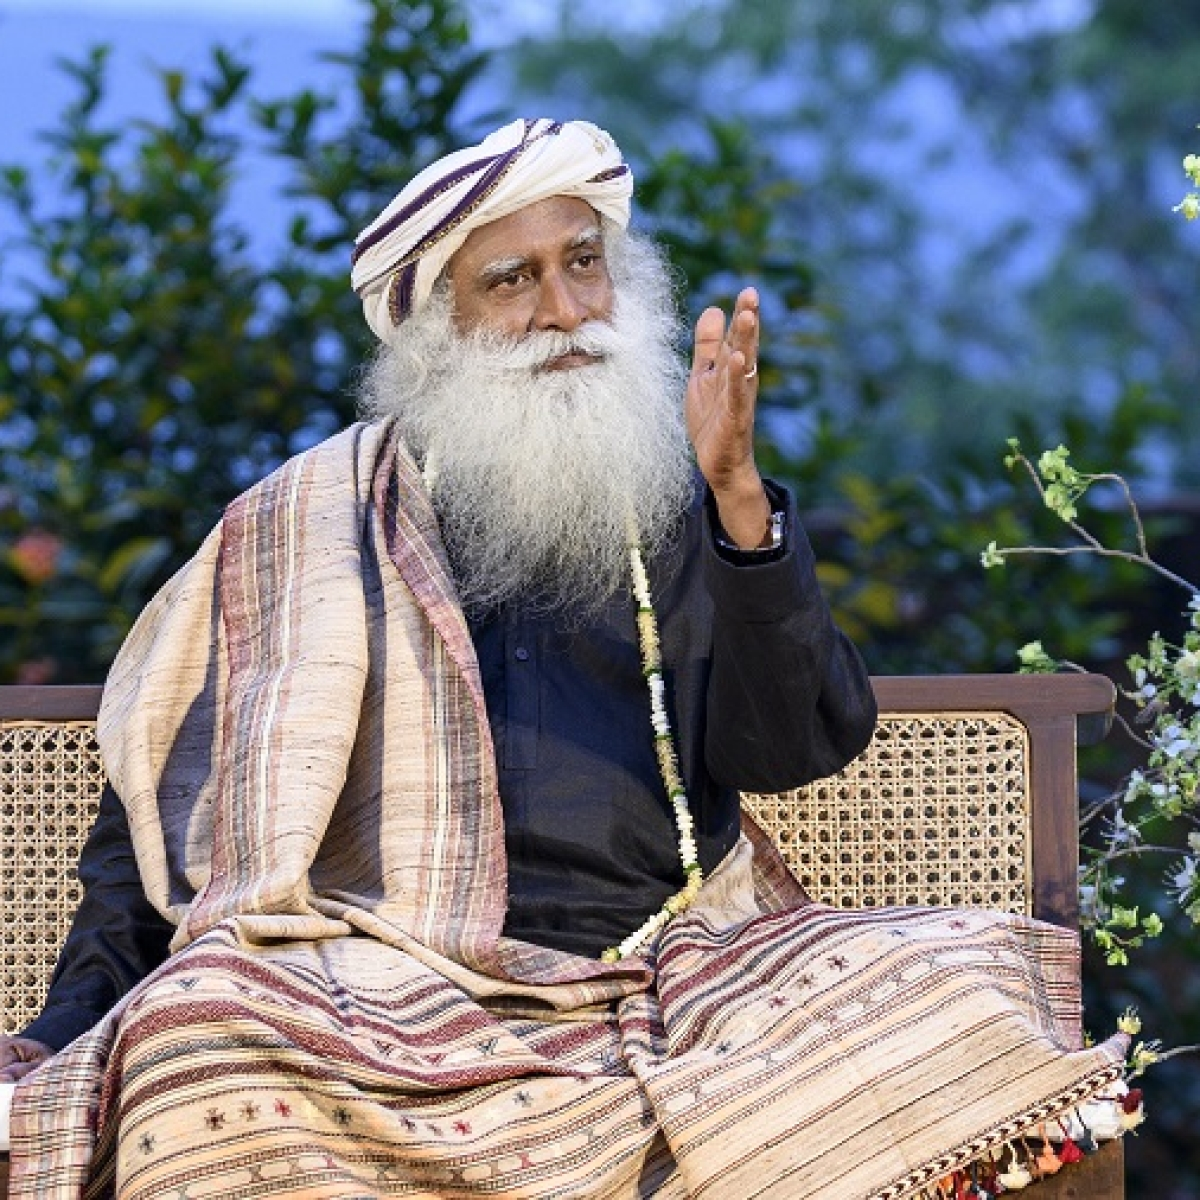 Sadhguru interacts with top IAS officers; lauds them for their exemplary work, says they are 'spine of India'